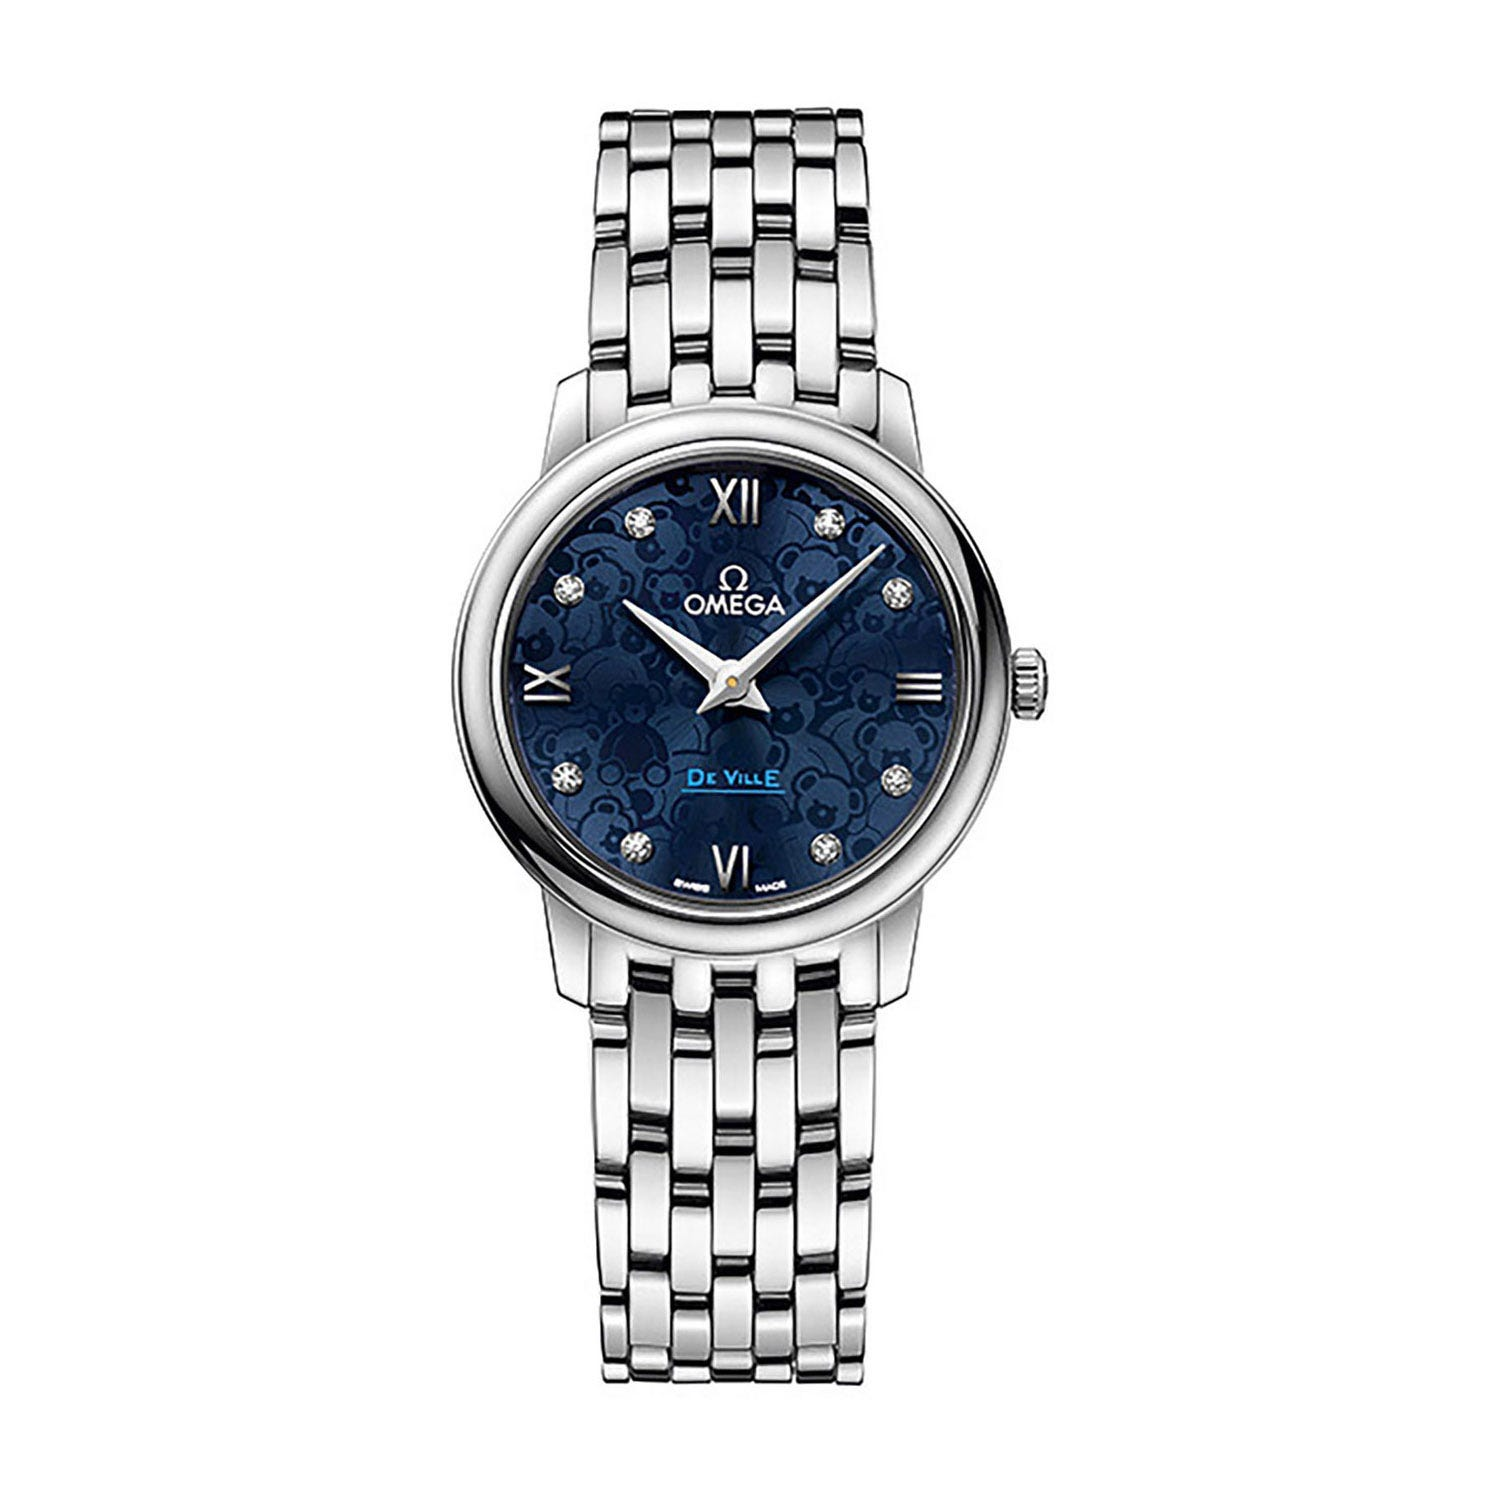 Omega De Ville Prestige Orbis ladies' diamond dot stainless steel watch